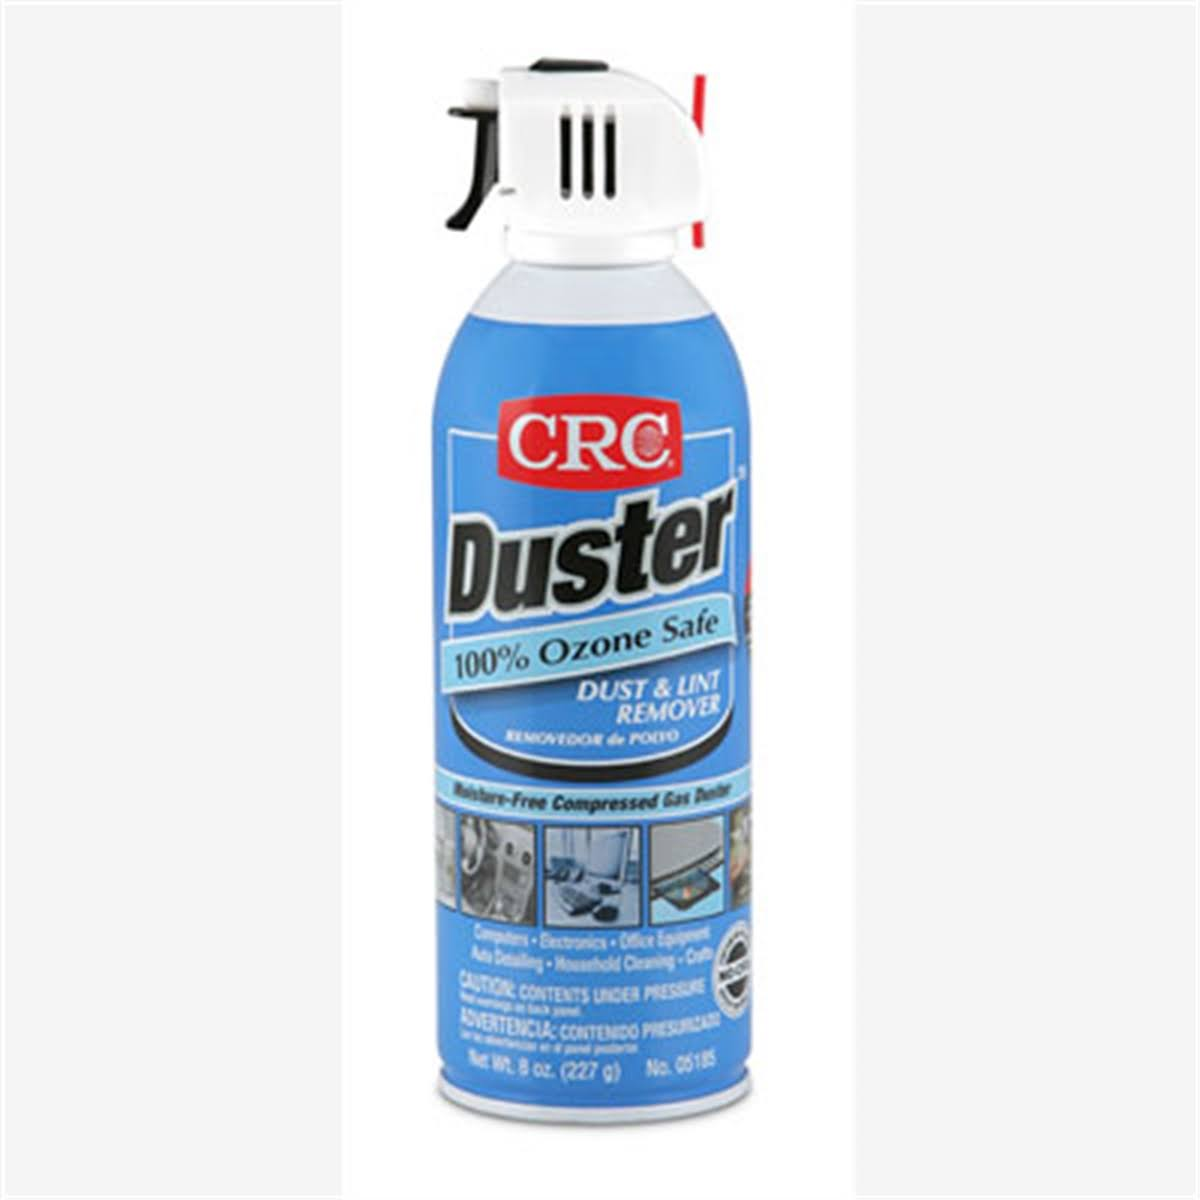 CRC Duster Air Spray - 8oz